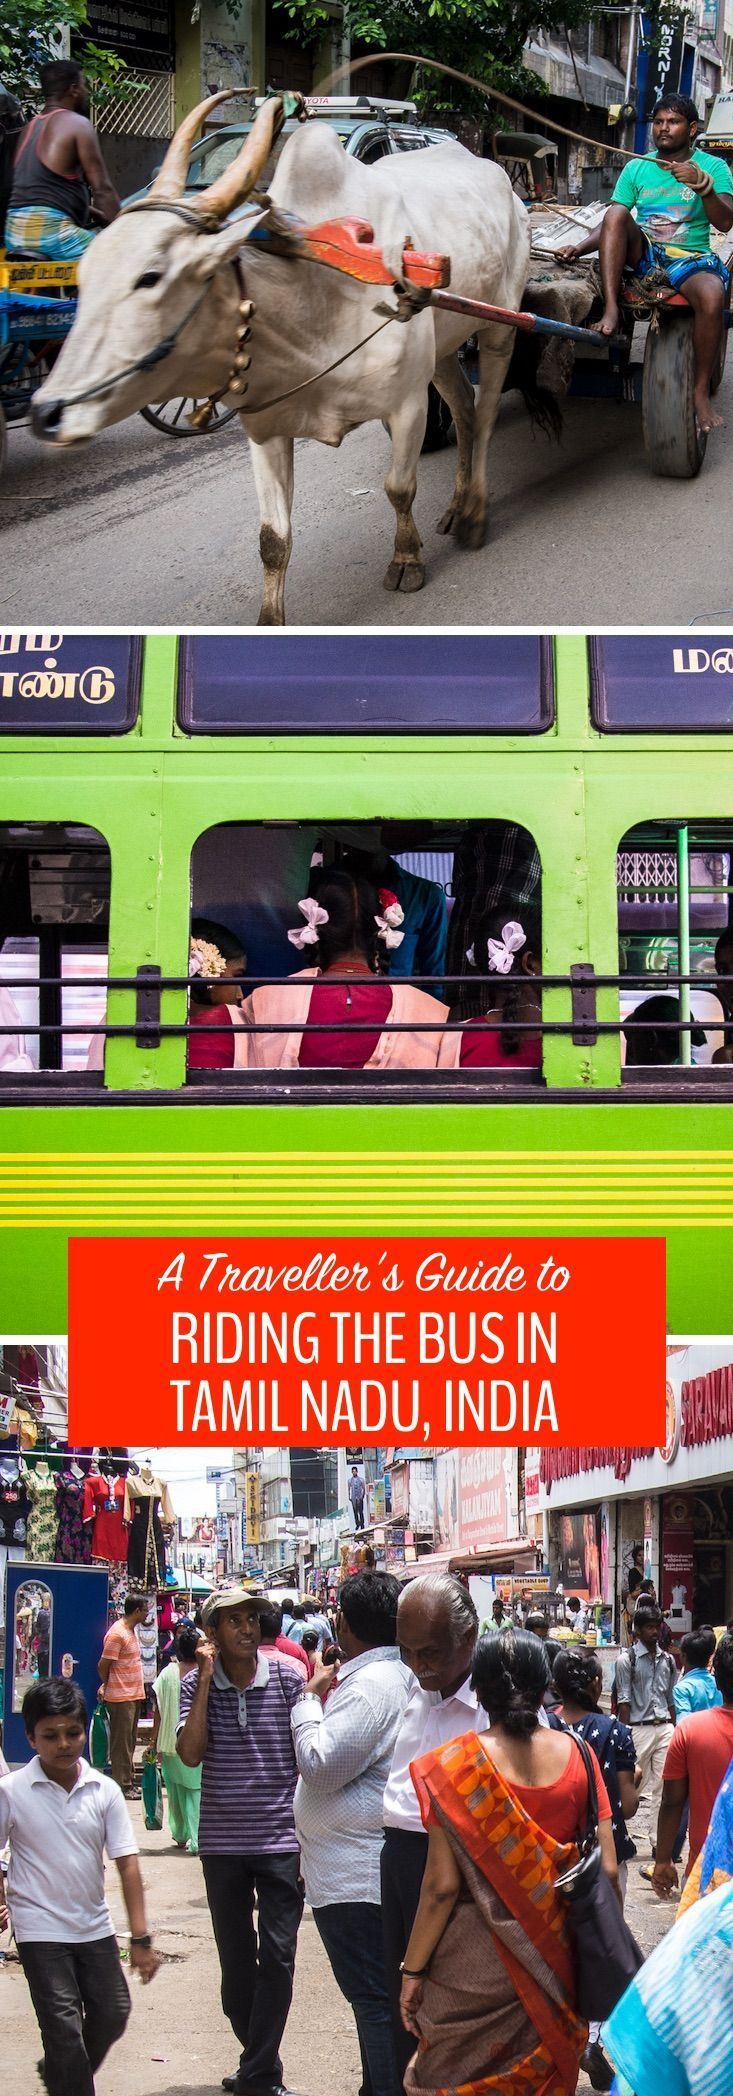 Before we took our first bus in Tamil Nadu, it seemed that navigating the confusing and apparently disorganized bus system would be an impossibility. We're saying nothing for the comfort, but if you want a true cultural experience, riding the bus in Tamil Nadu is the place to find it. Here's how to do it ->